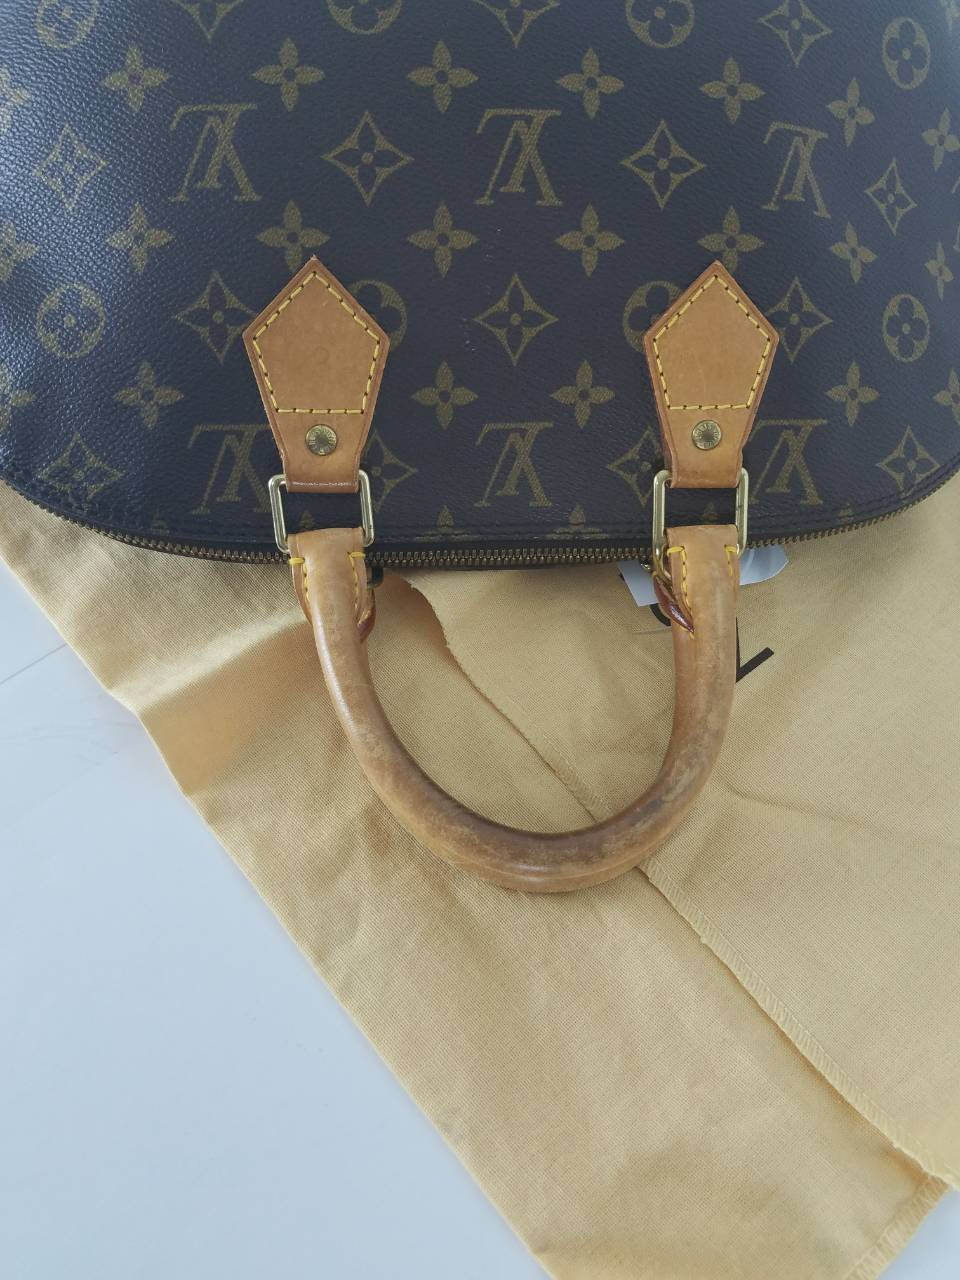 Louis Vuitton Alma PM M51130 Monogram Handbag 10795 - eModaOutlet